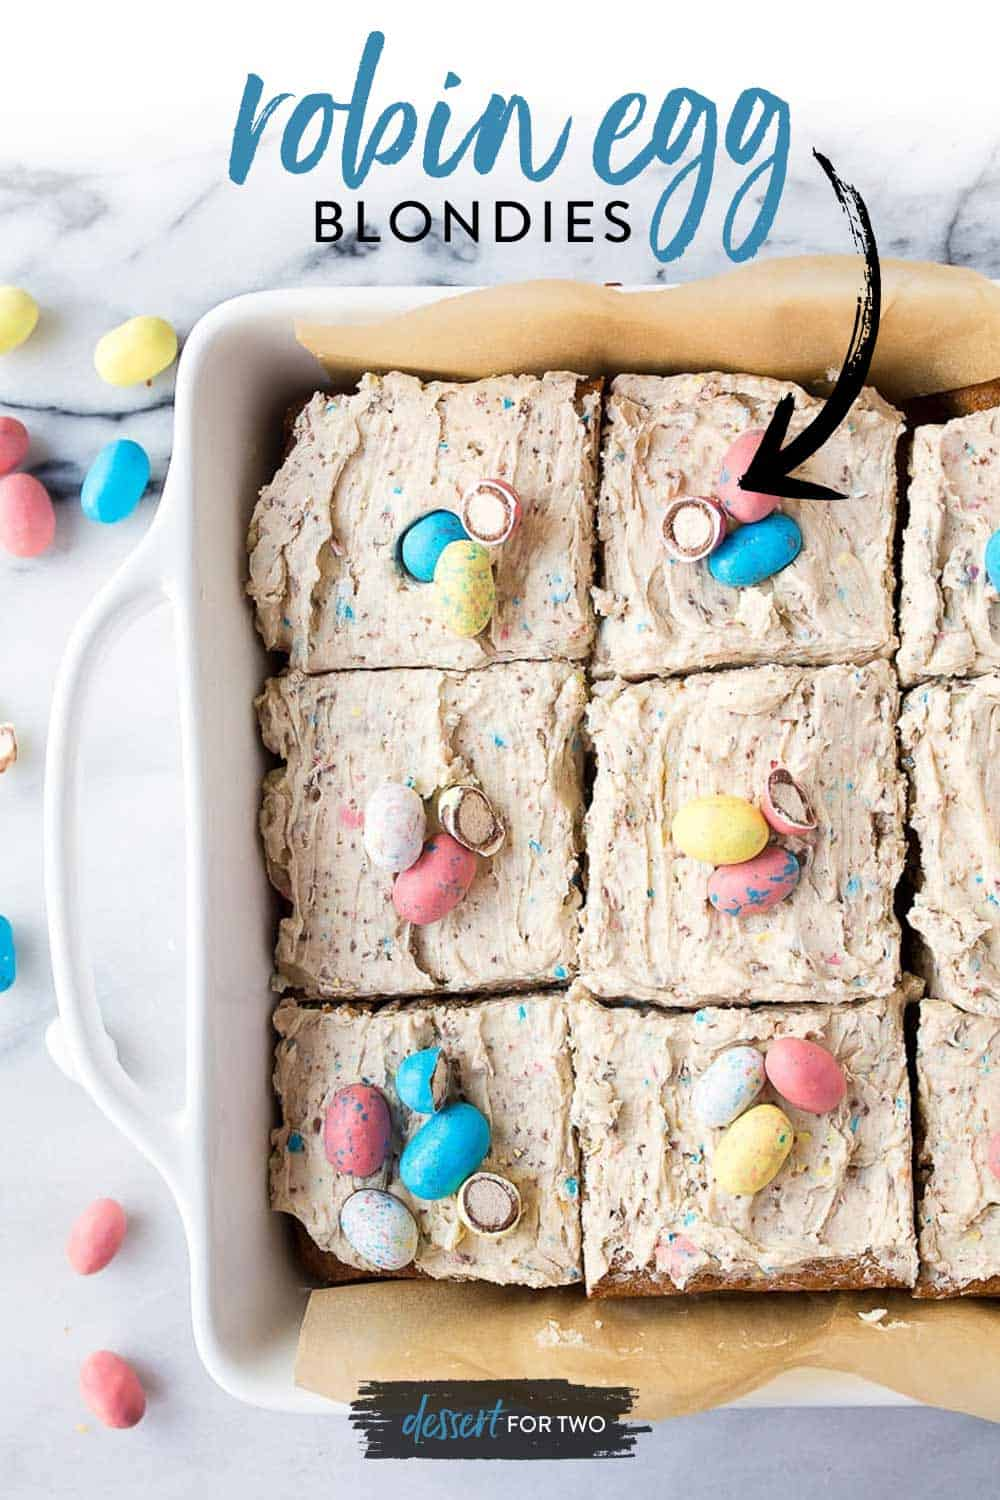 Square dish of frosted blondies with robin eggs on top.